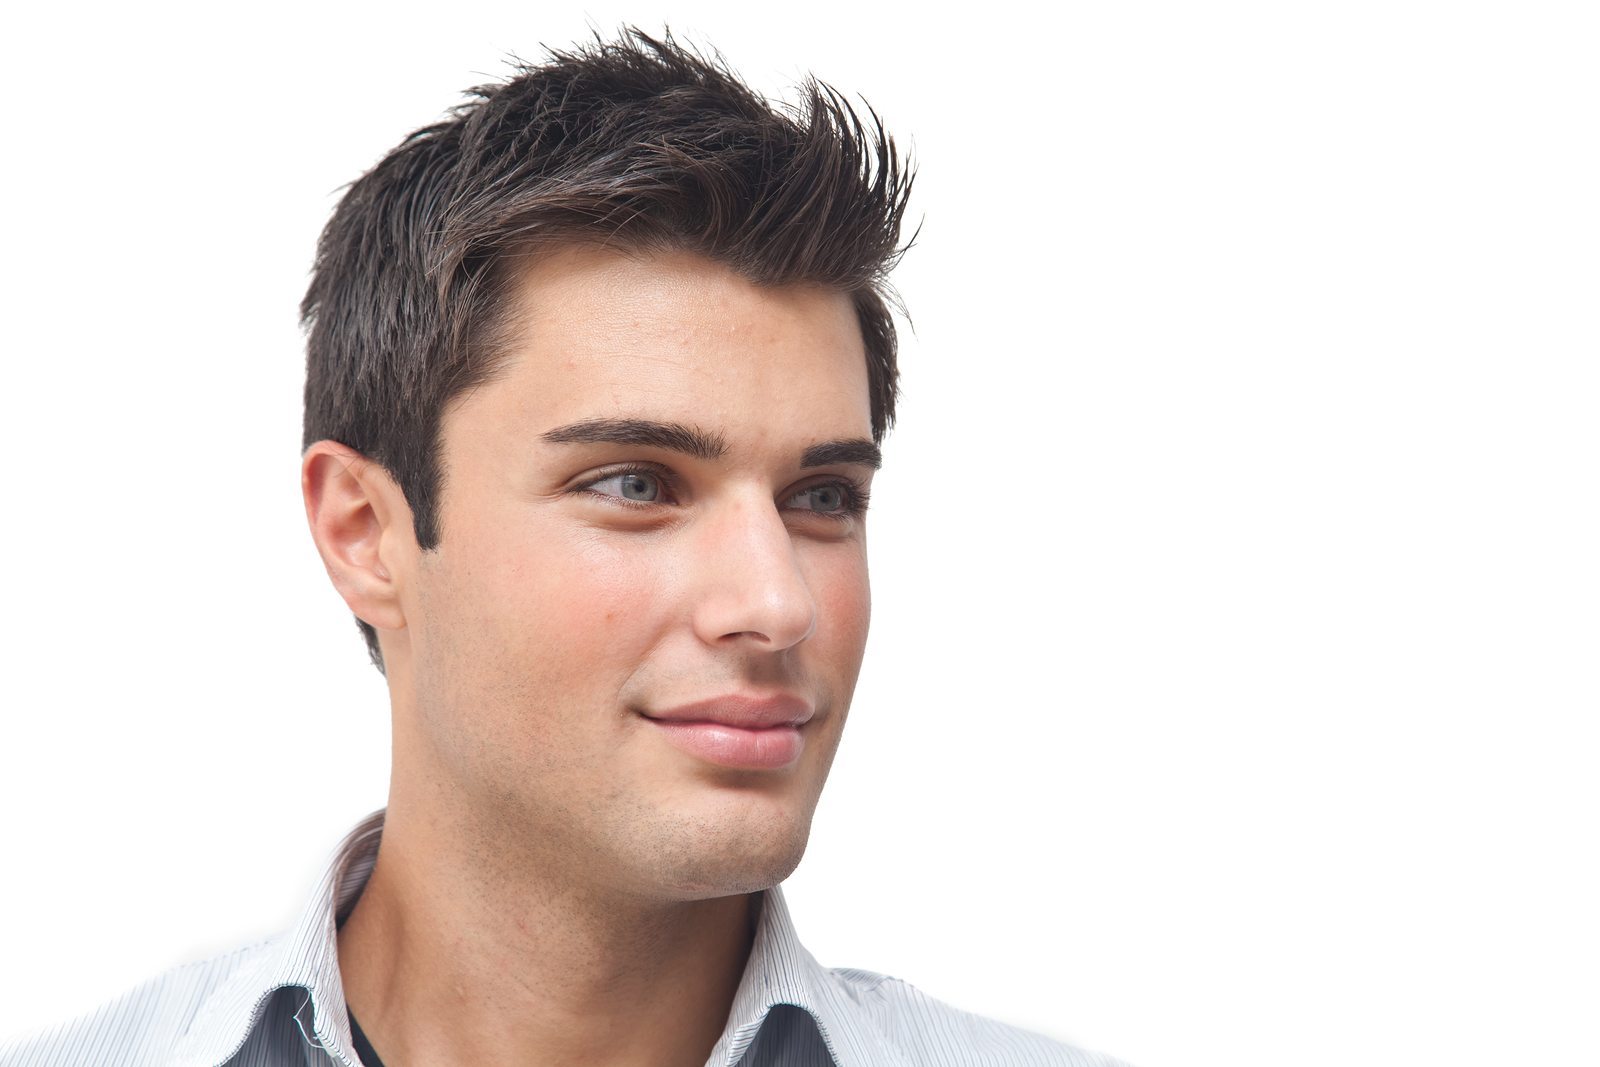 Young Men Hair Styles: Go Back To The Future With Men's Hairstyles